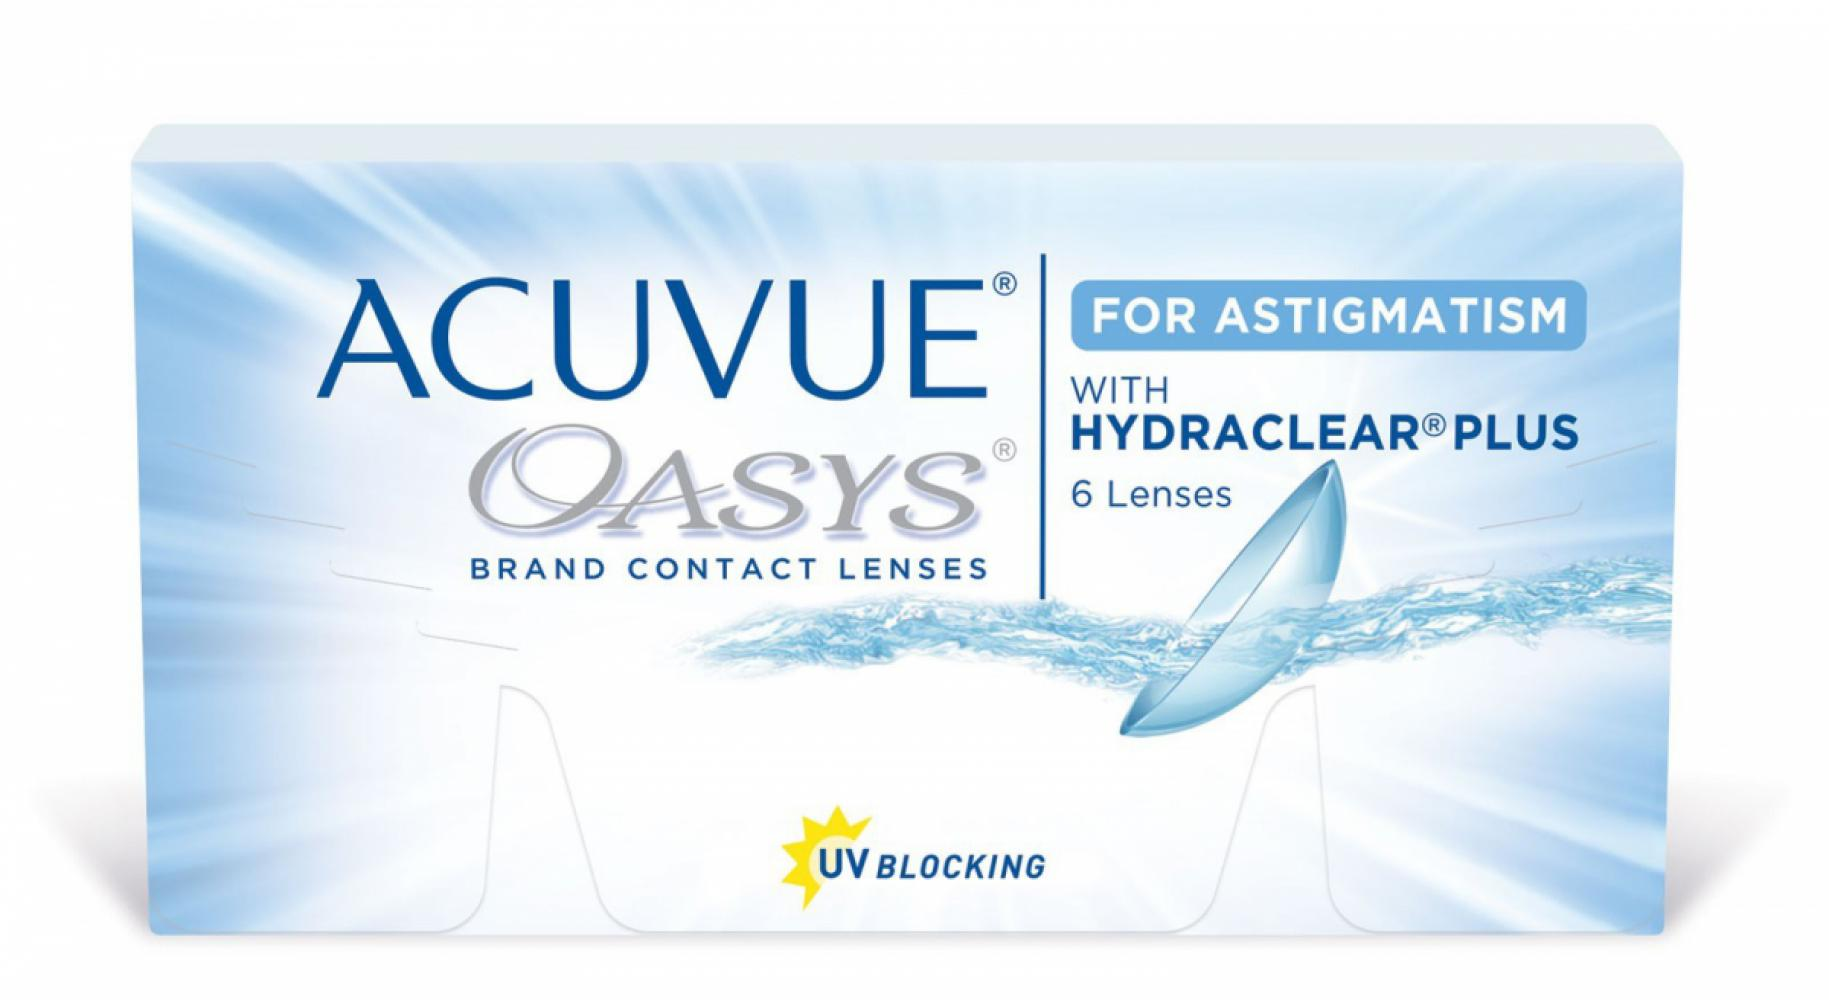 ACUVUE Oasys for Astigmatism with Hydraclear Plus 6 шт.